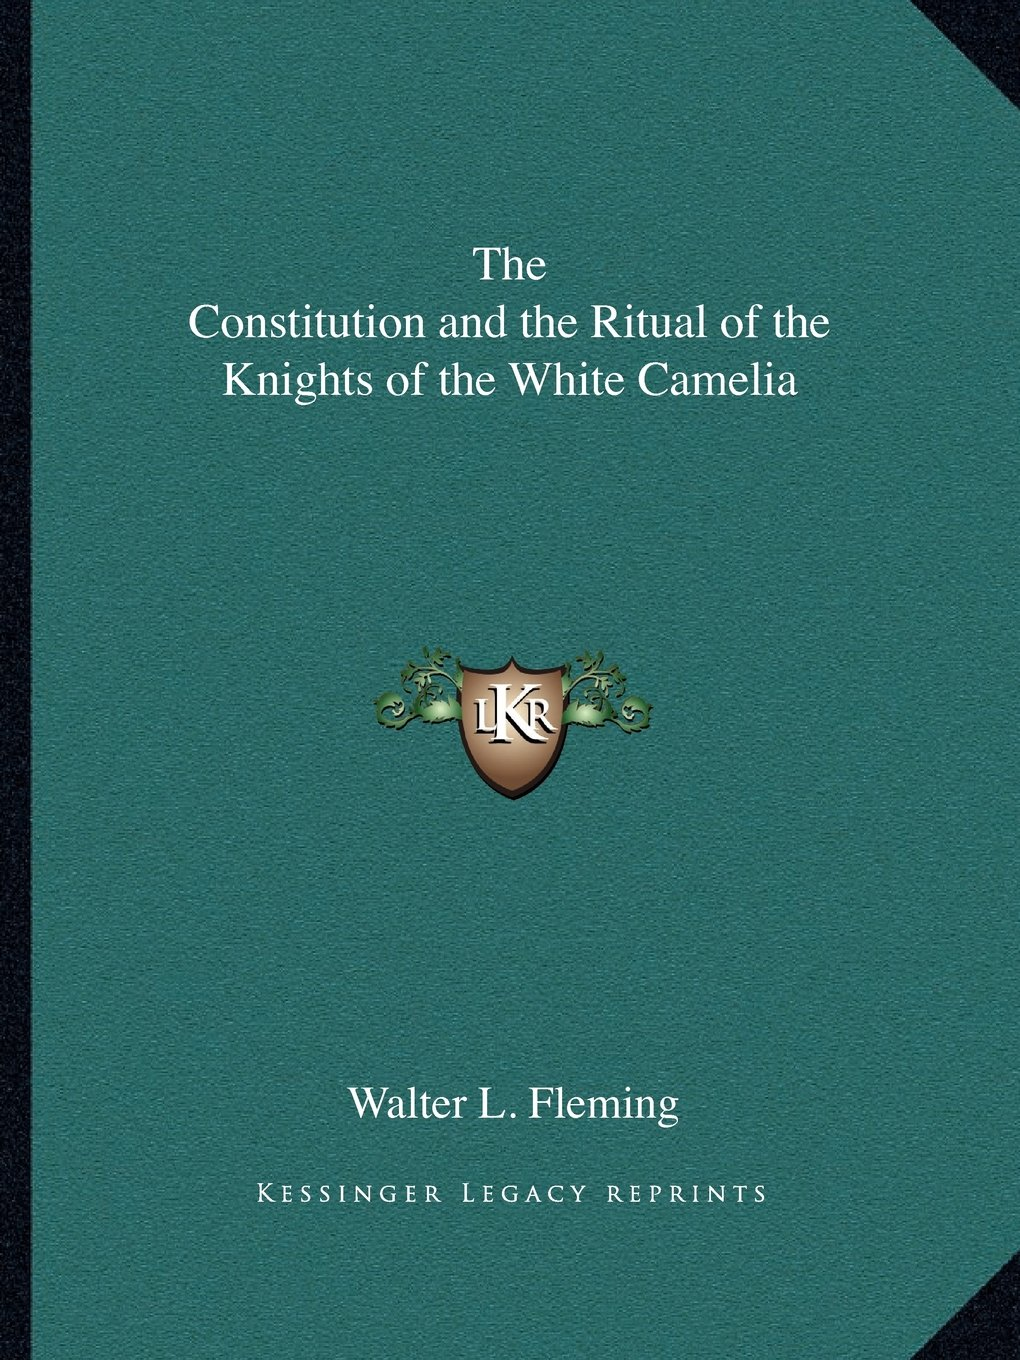 knights of the white camellia